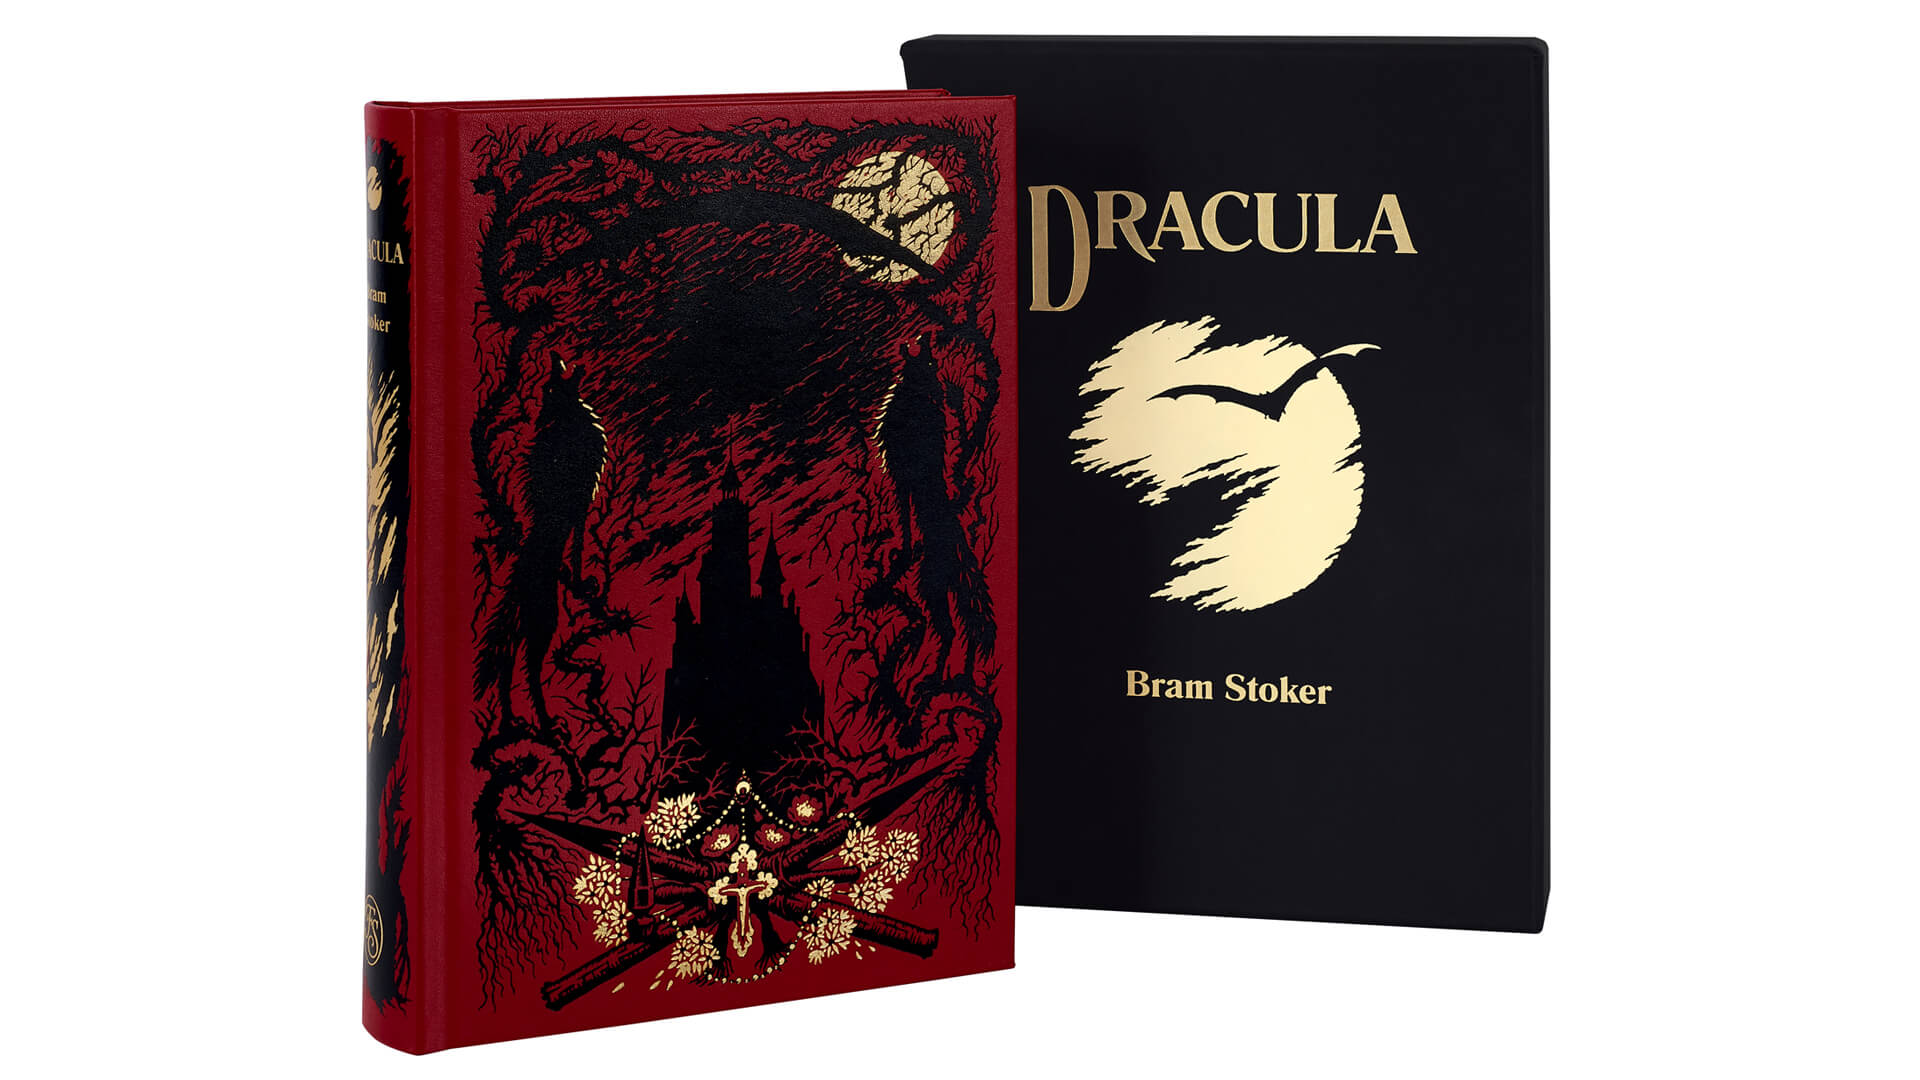 Dracula book front cover